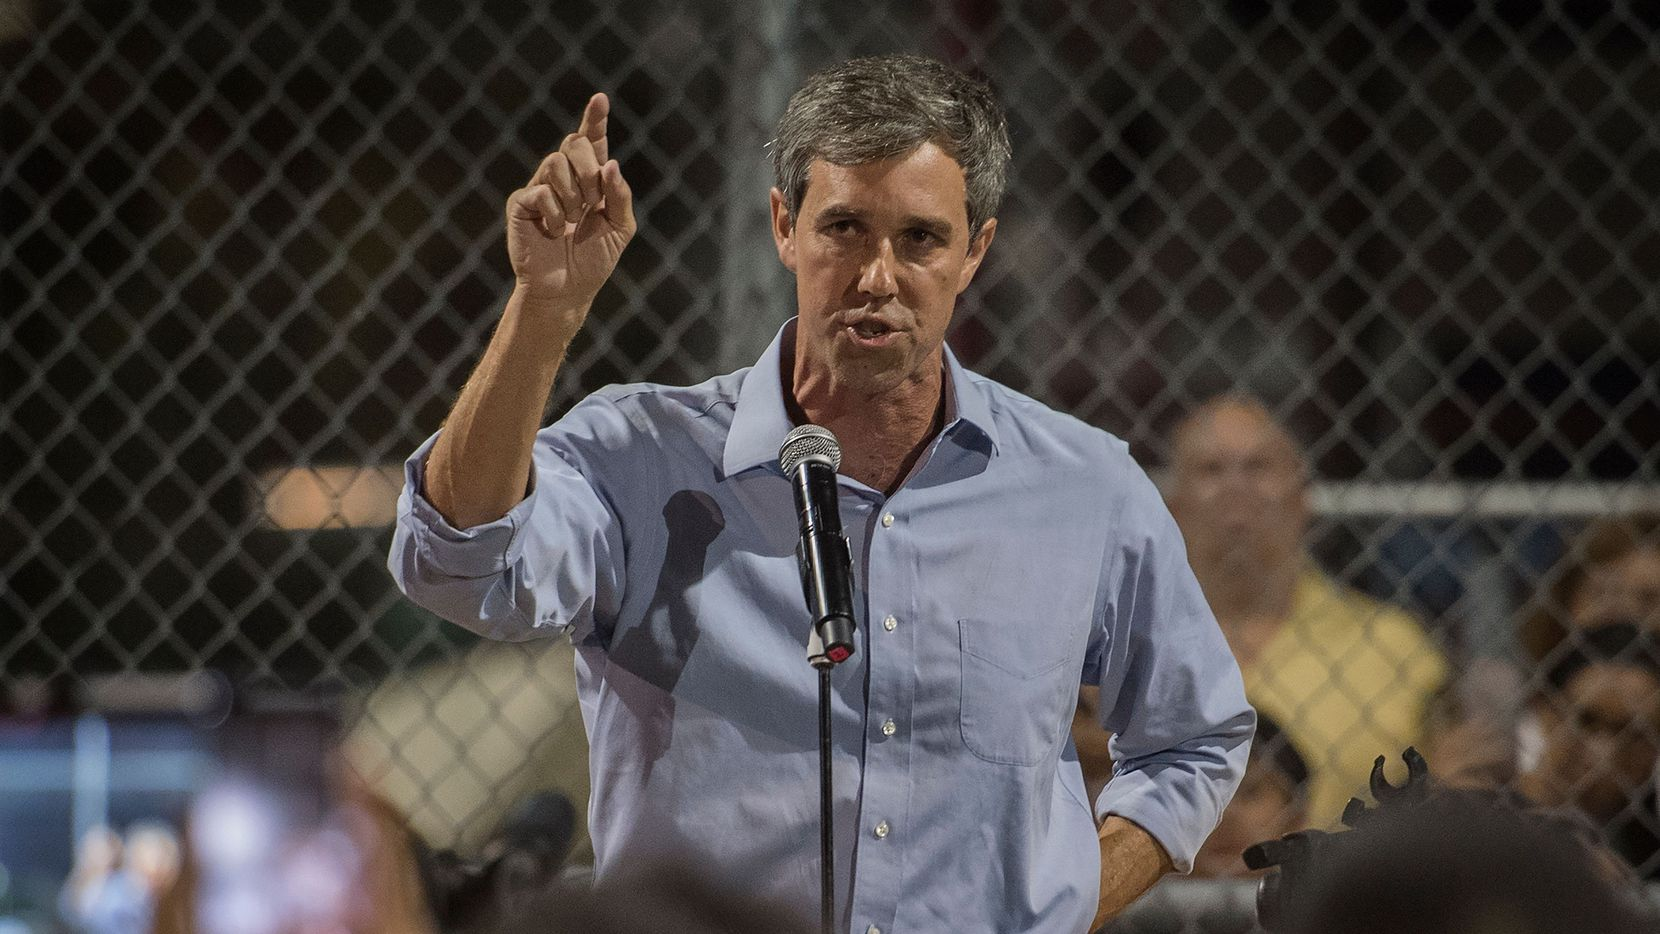 Democratic presidential hopeful and former US Representative for Texas' 16th congressional district Beto O'Rourke speaks to the crowd during a prayer and candle vigil organized by the city, after a shooting left 20 people dead at the Cielo Vista Mall WalMart in El Paso, Texas, on August 4, 2019. - A shooting at a Walmart store in Texas left multiple people dead. At least one suspect was taken into custody after the shooting in the border city of El Paso, triggering fear and panic among weekend shoppers as well as widespread condemnation.